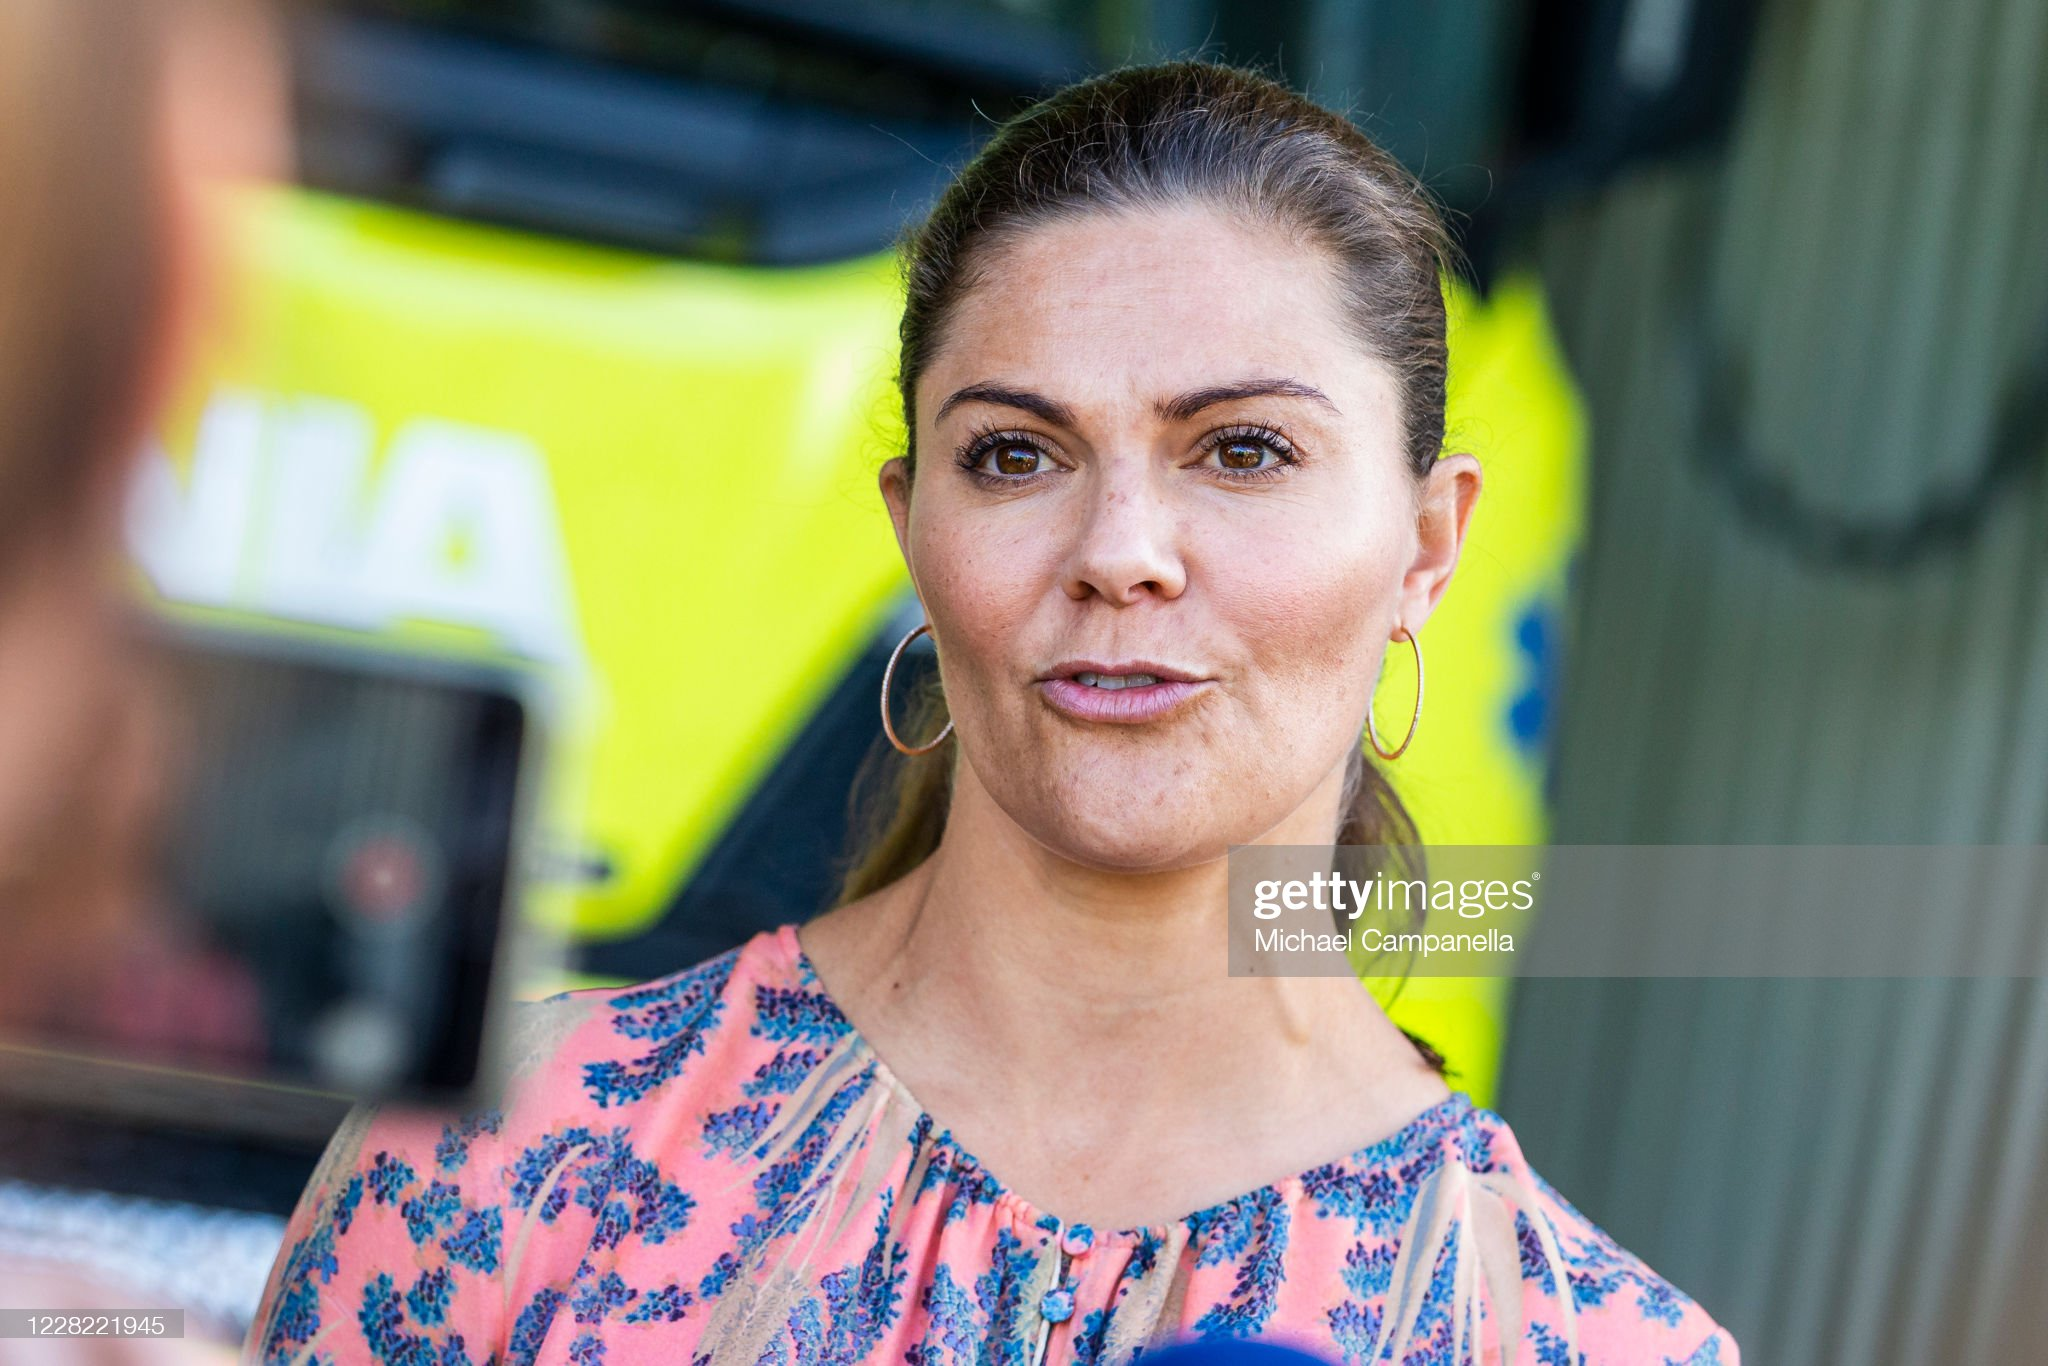 crown-princess-victoria-of-sweden-visits-an-ambulance-station-in-the-picture-id1228221945